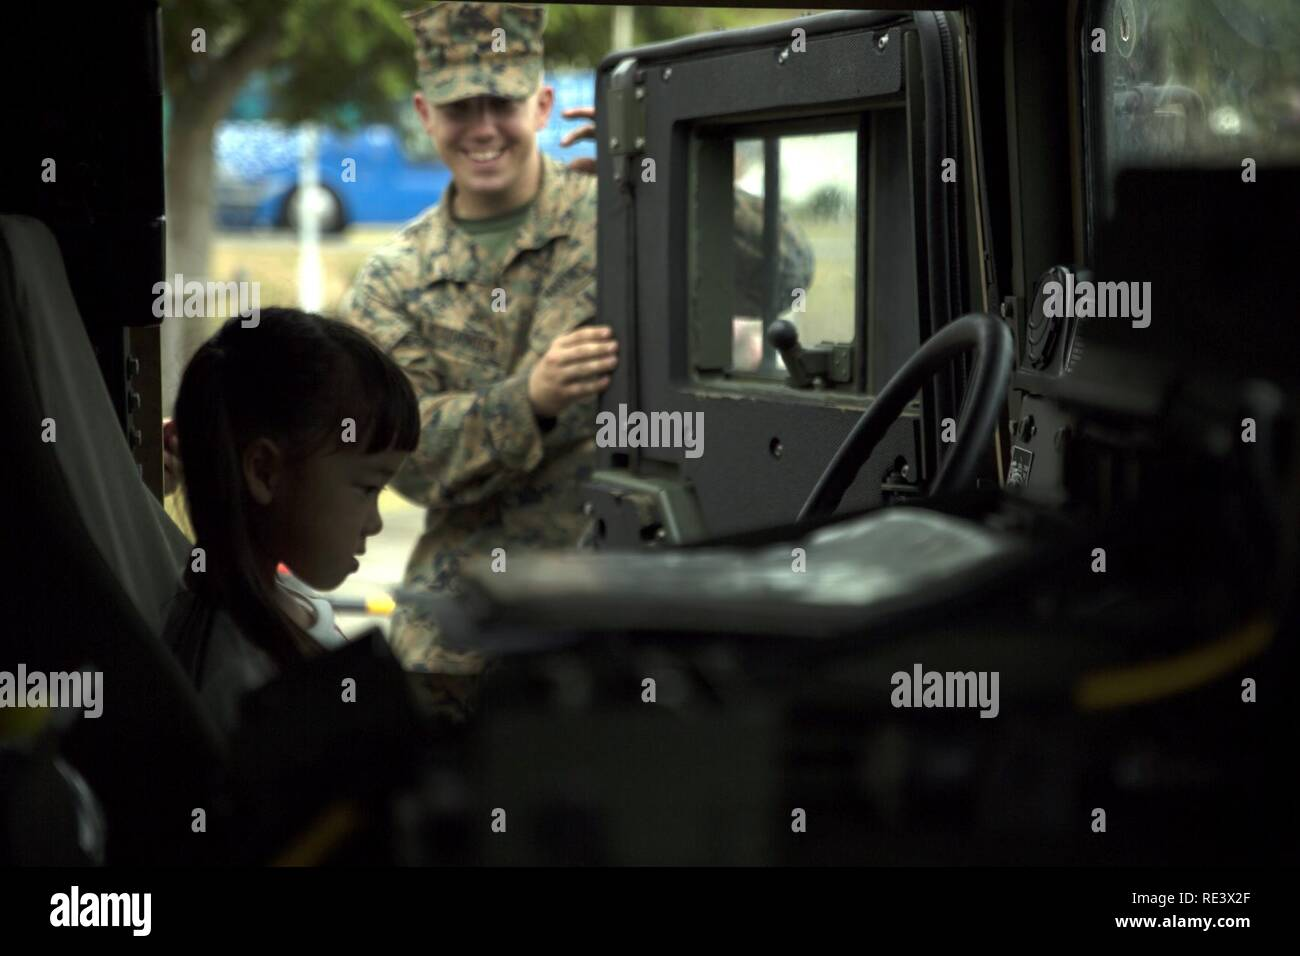 An Okinawa resident sits in a Humvee Nov. 20, 2016 during the Japan Ground Self-Defense Force Festival on Camp Naha, Okinawa, Japan. The festival celebrated the 6th anniversary of the 15th Brigade and the 44th anniversary of Camp Naha. The Humvee was one of three vehicles Marines with Combat Assault Battalion, 3rd Marine Division, III Marine Expeditionary Force brought for display. Stock Photo